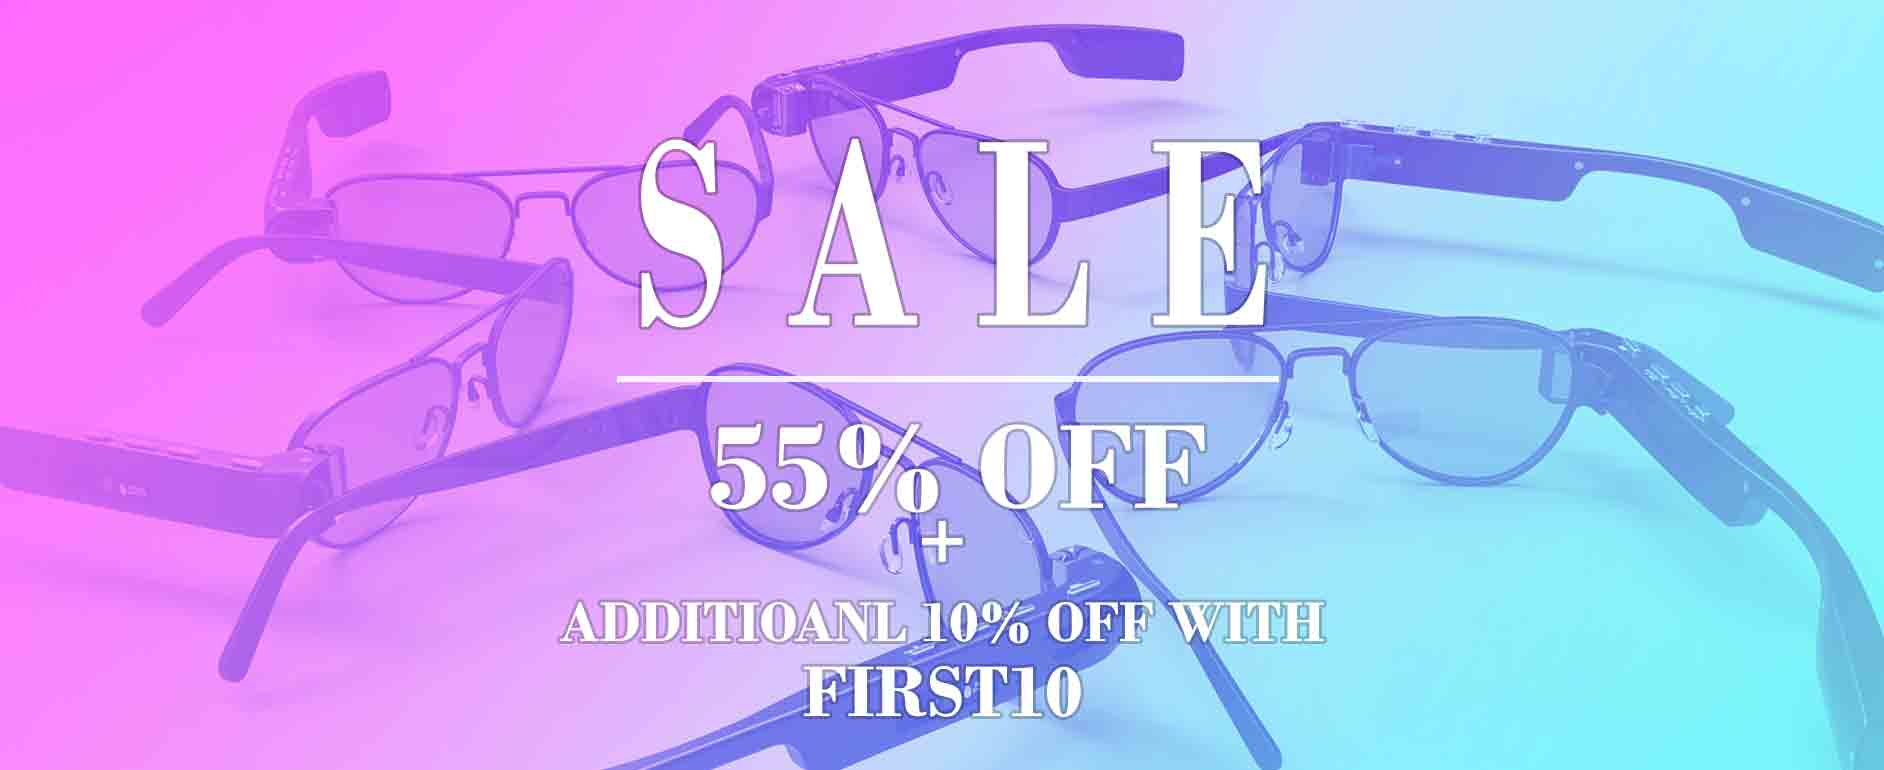 Get additional 10% Off with FIRST10